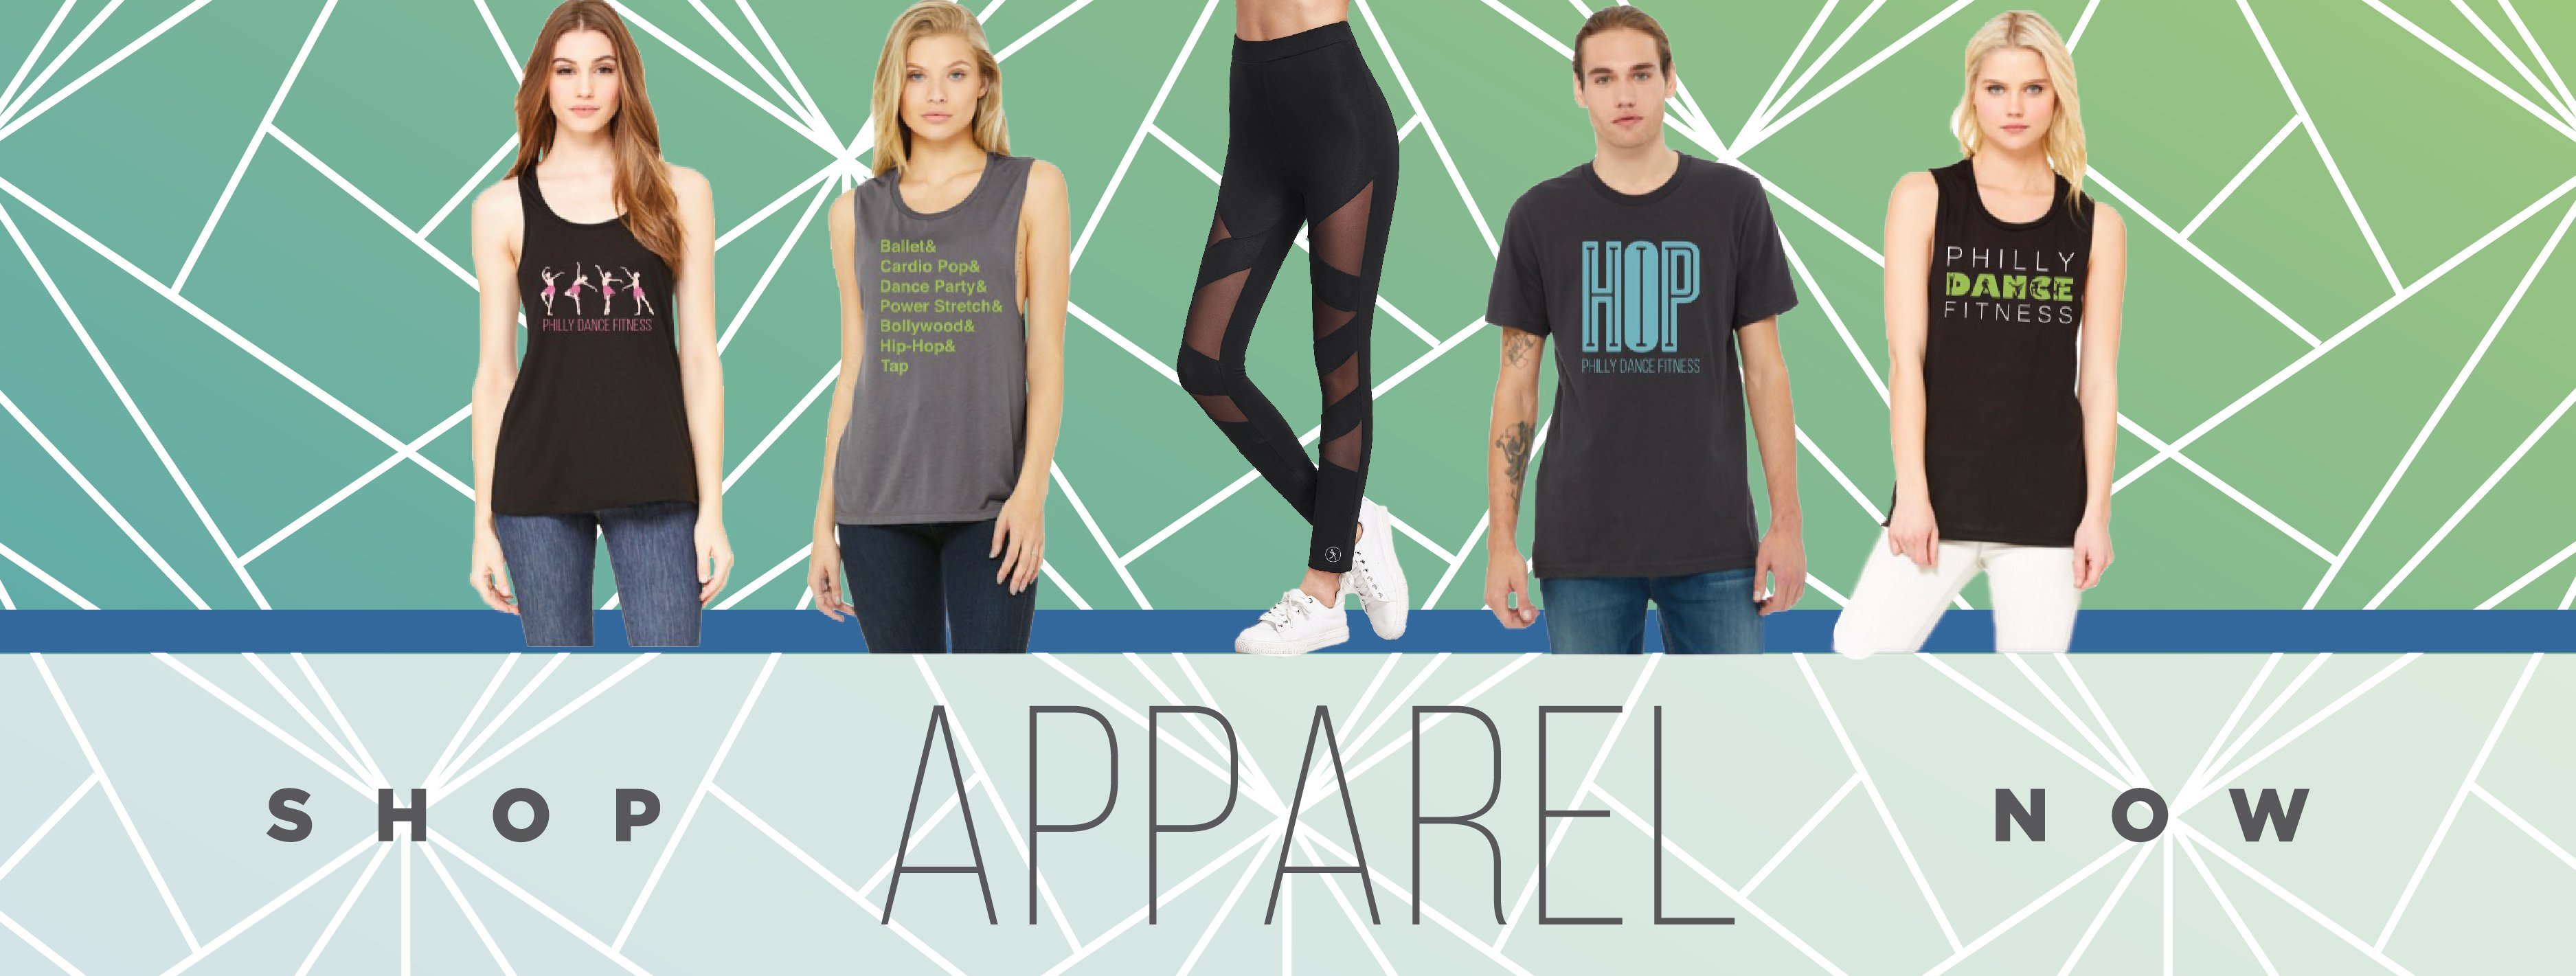 5828e3fb8 Step up your dance fitness game with a little extra swag! Check out our  line of super-soft tanks, tees, comfortable shorts and stylish leggings so  you can ...